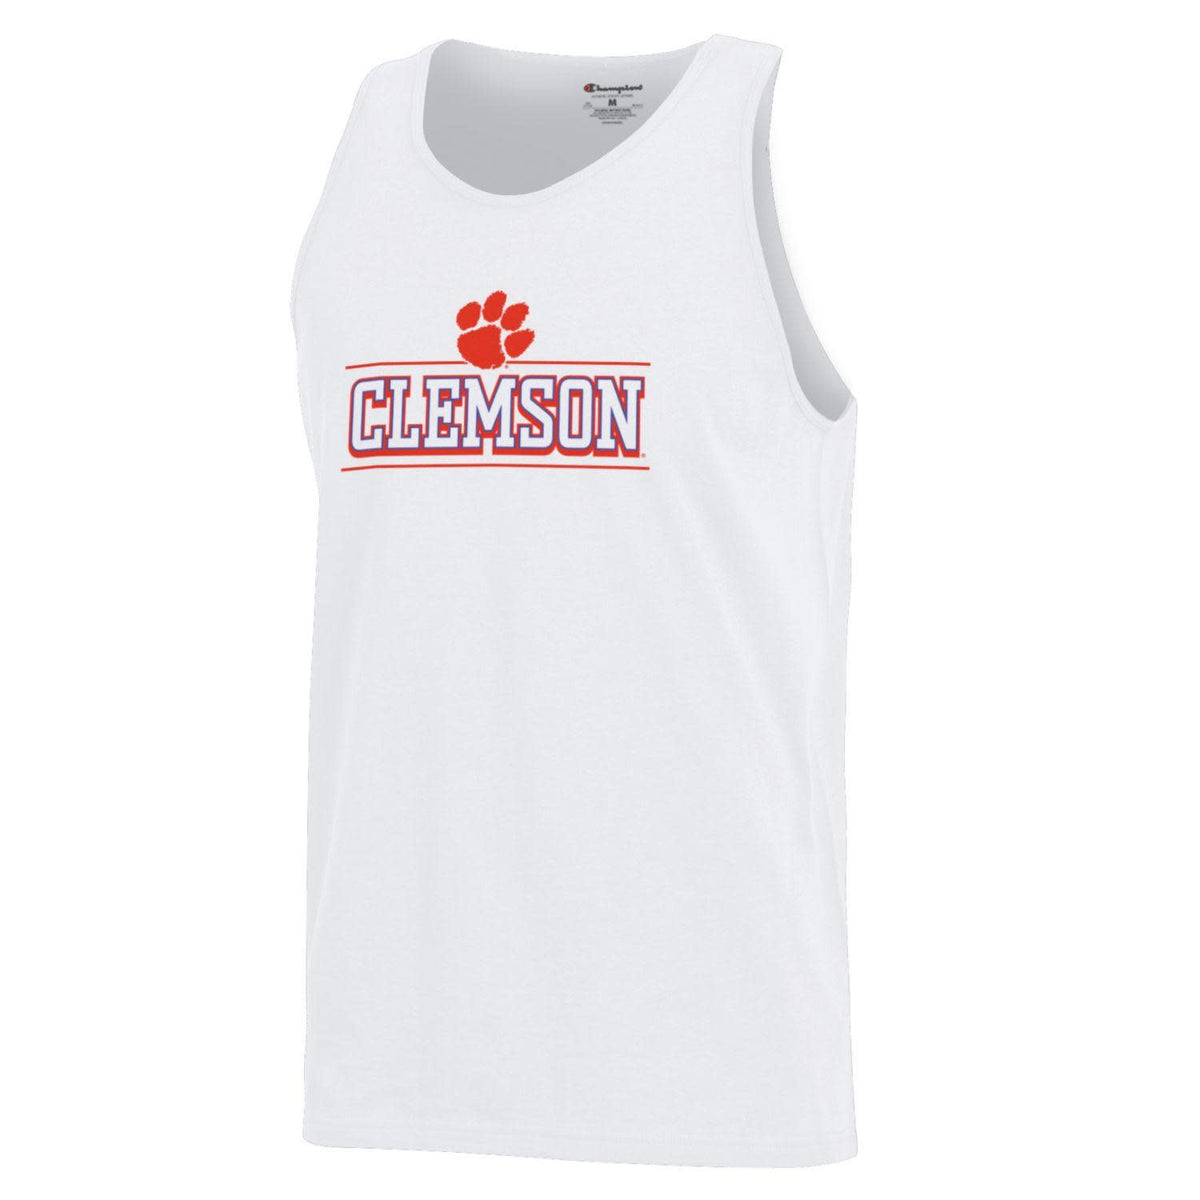 Champion Men's Tank Top